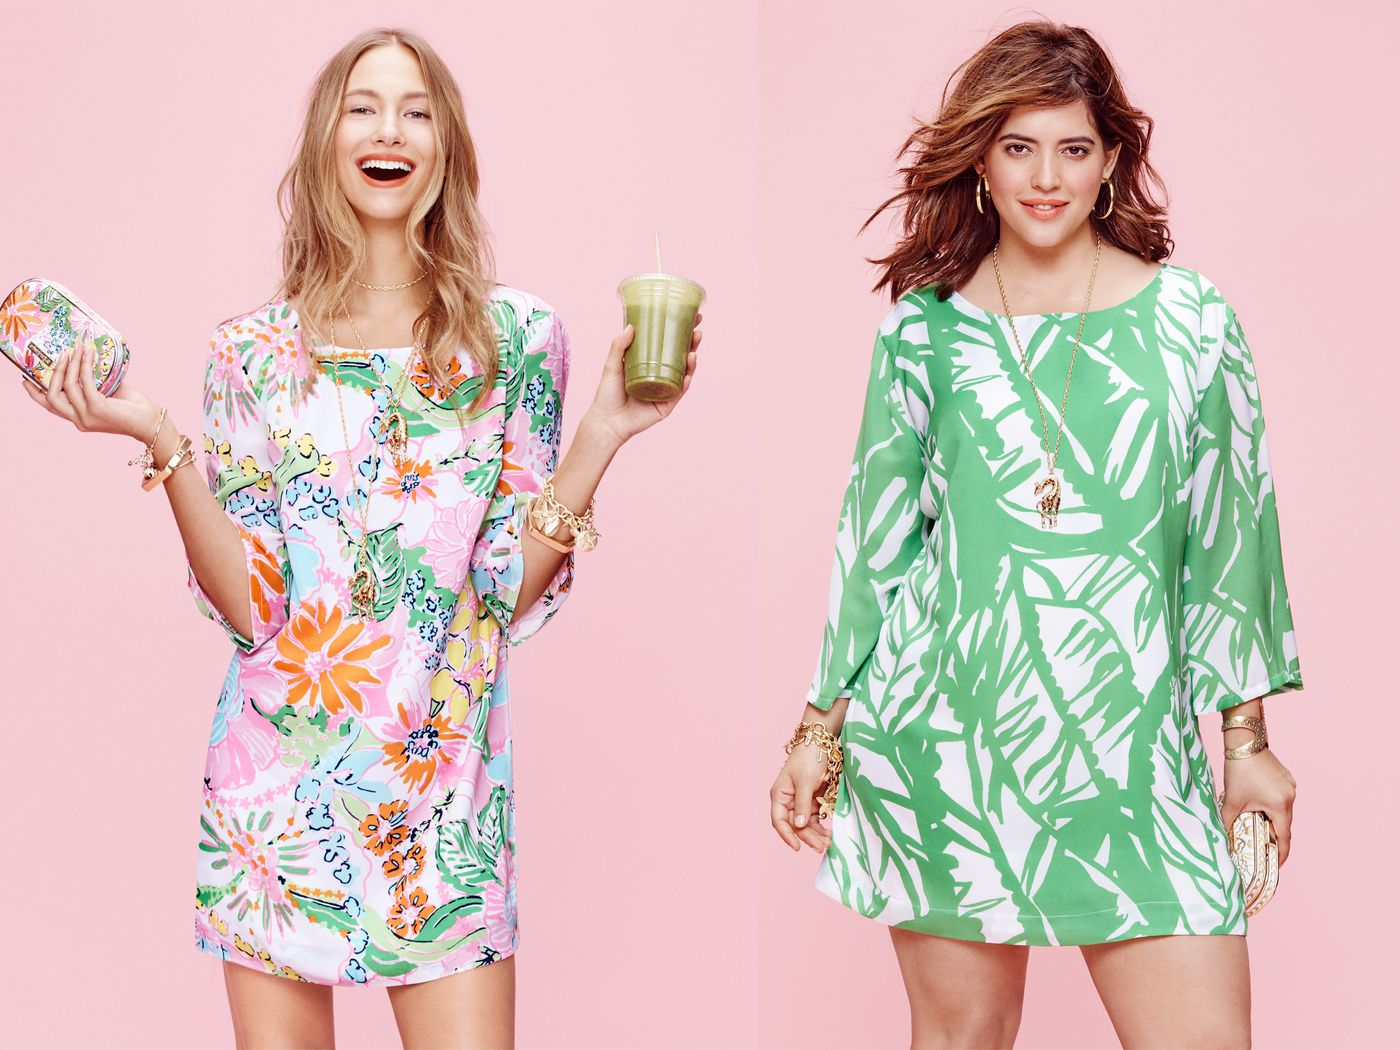 31ecd7359a5 The Lilly Pulitzer for Target Lookbook Is Here - Racked